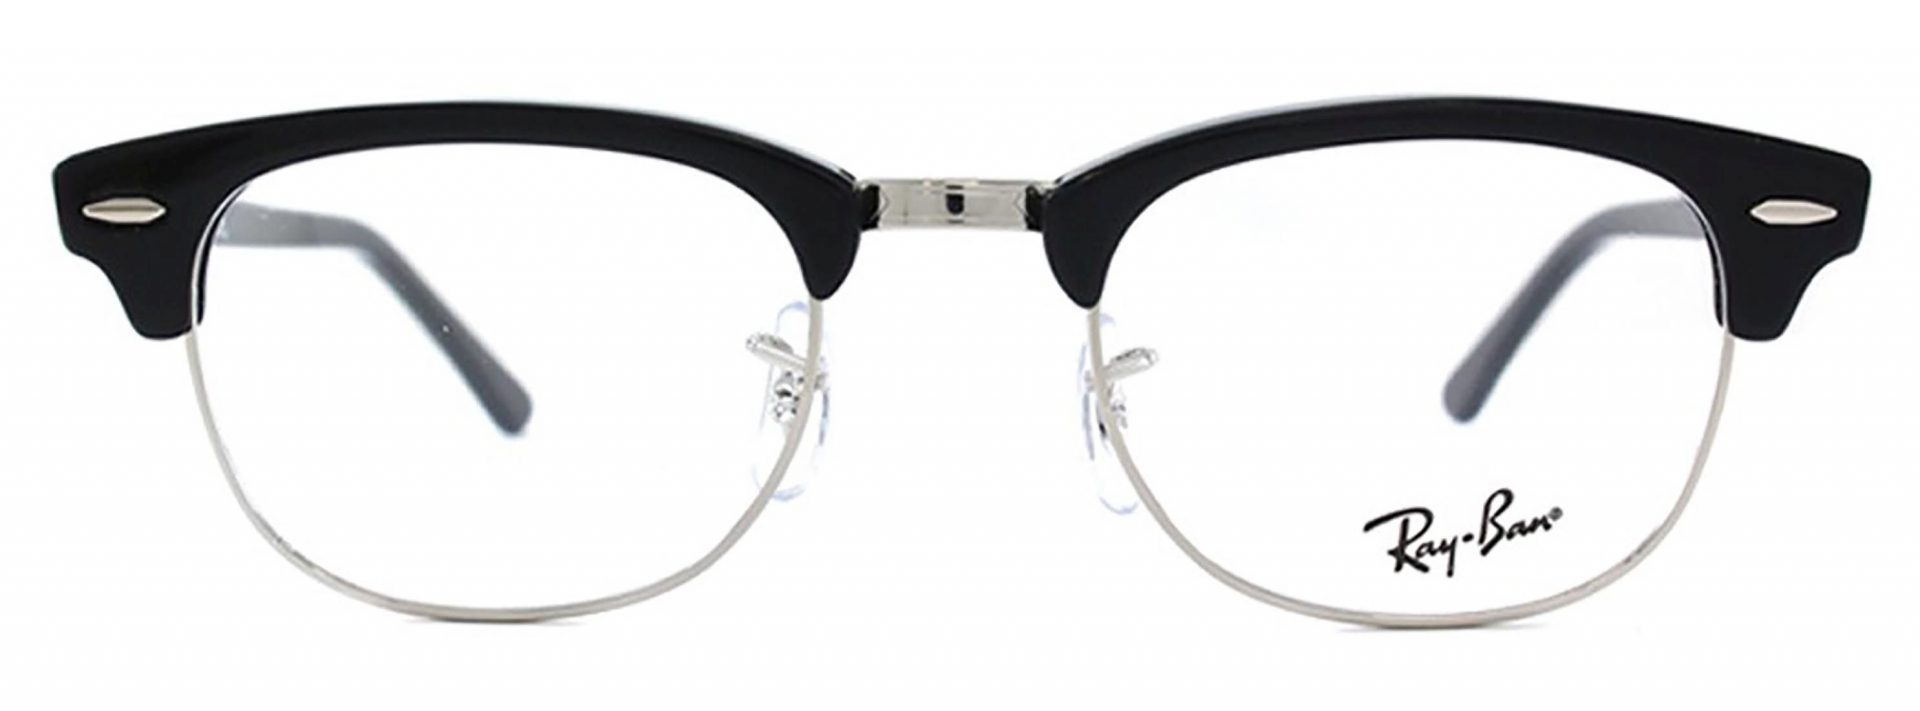 Ray-Ban spectacles 5154 2000 1 2970x1100